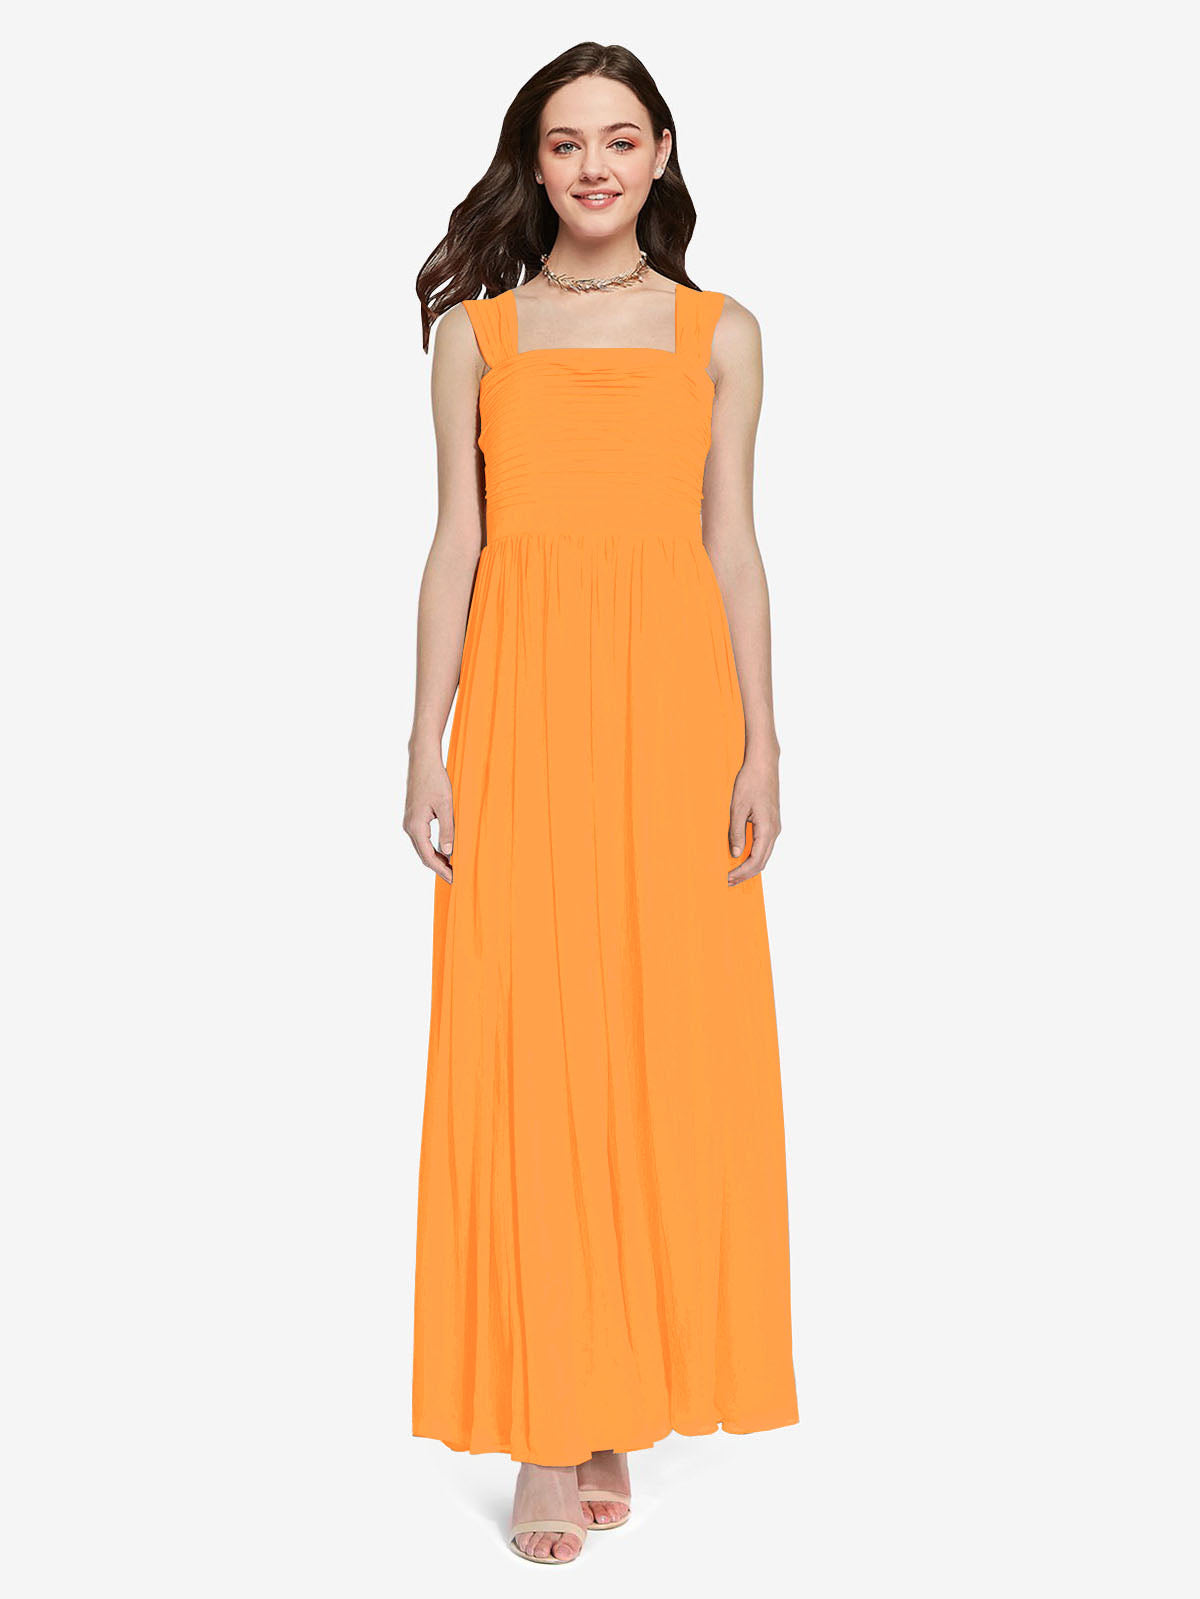 Long A-Line Square Sleeveless Orange Chiffon Bridesmaid Dress Aldridge